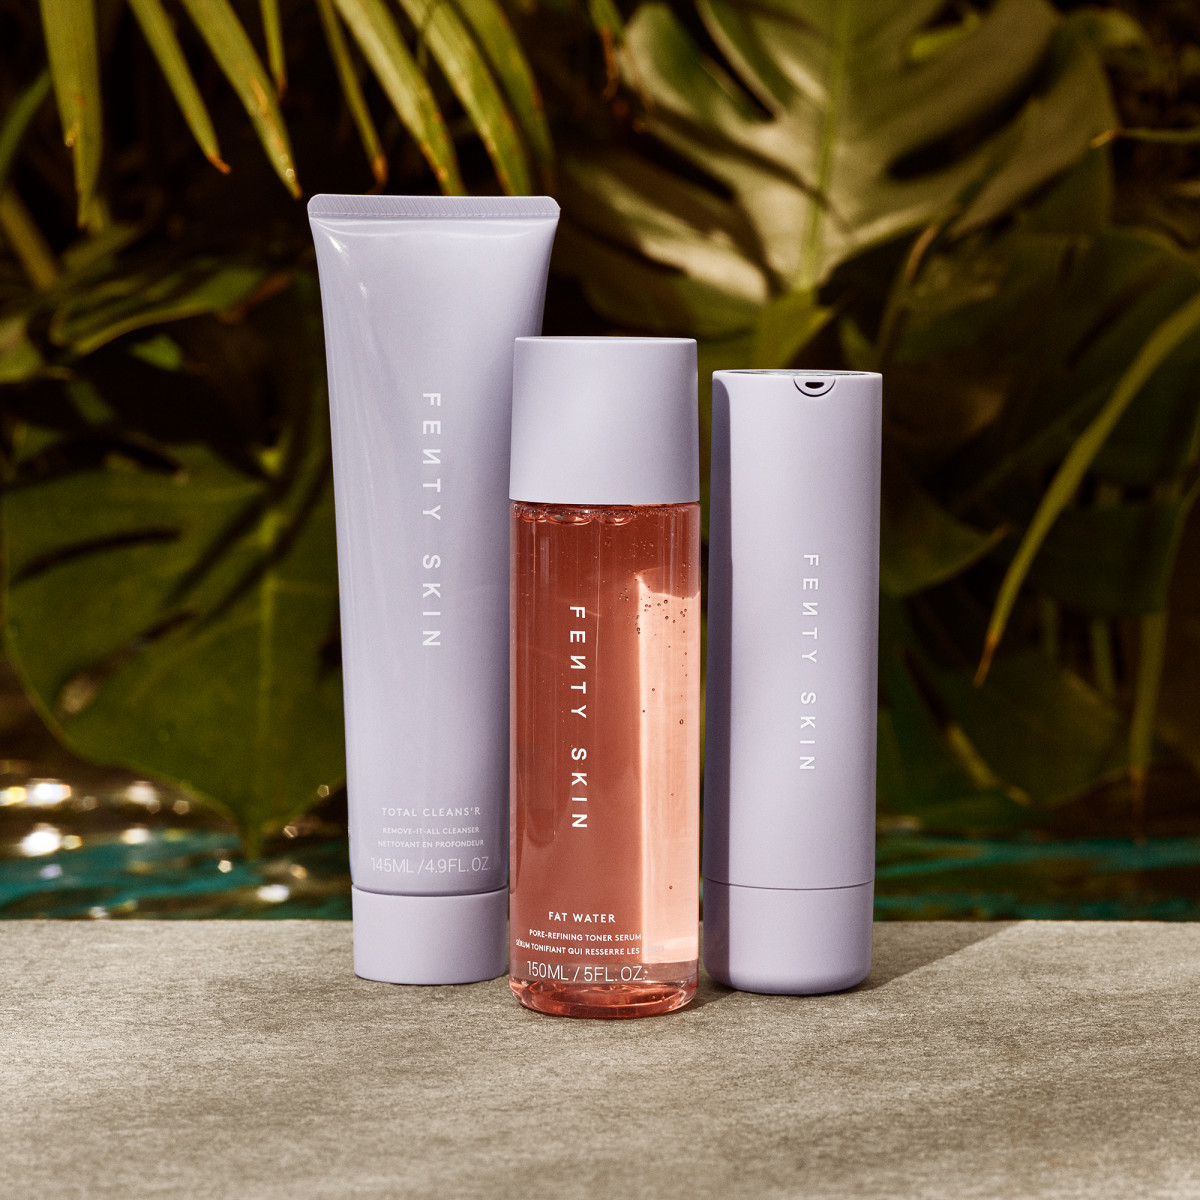 Fenty Skin Start'rs, $75 for the set, available here.